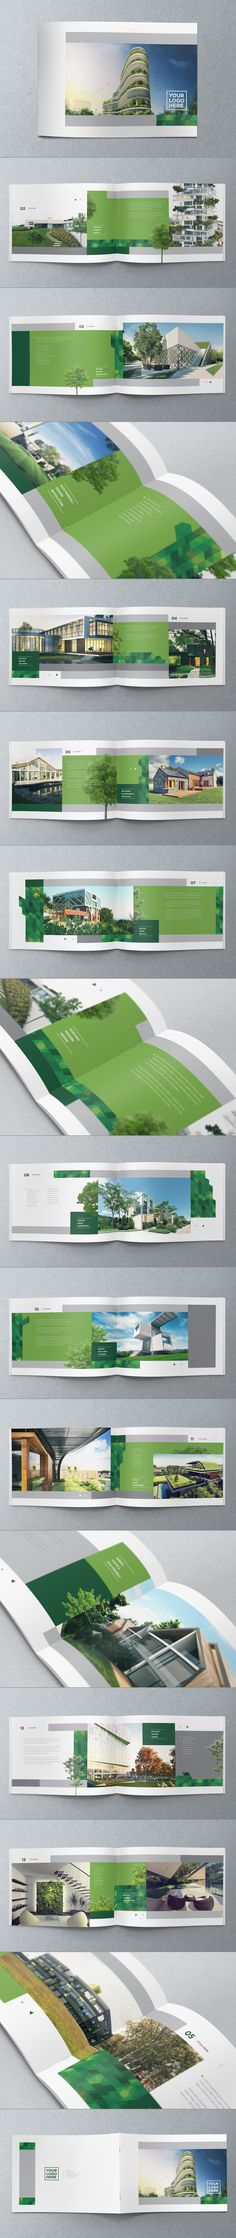 Brochure Design by Abra Design, via Behance